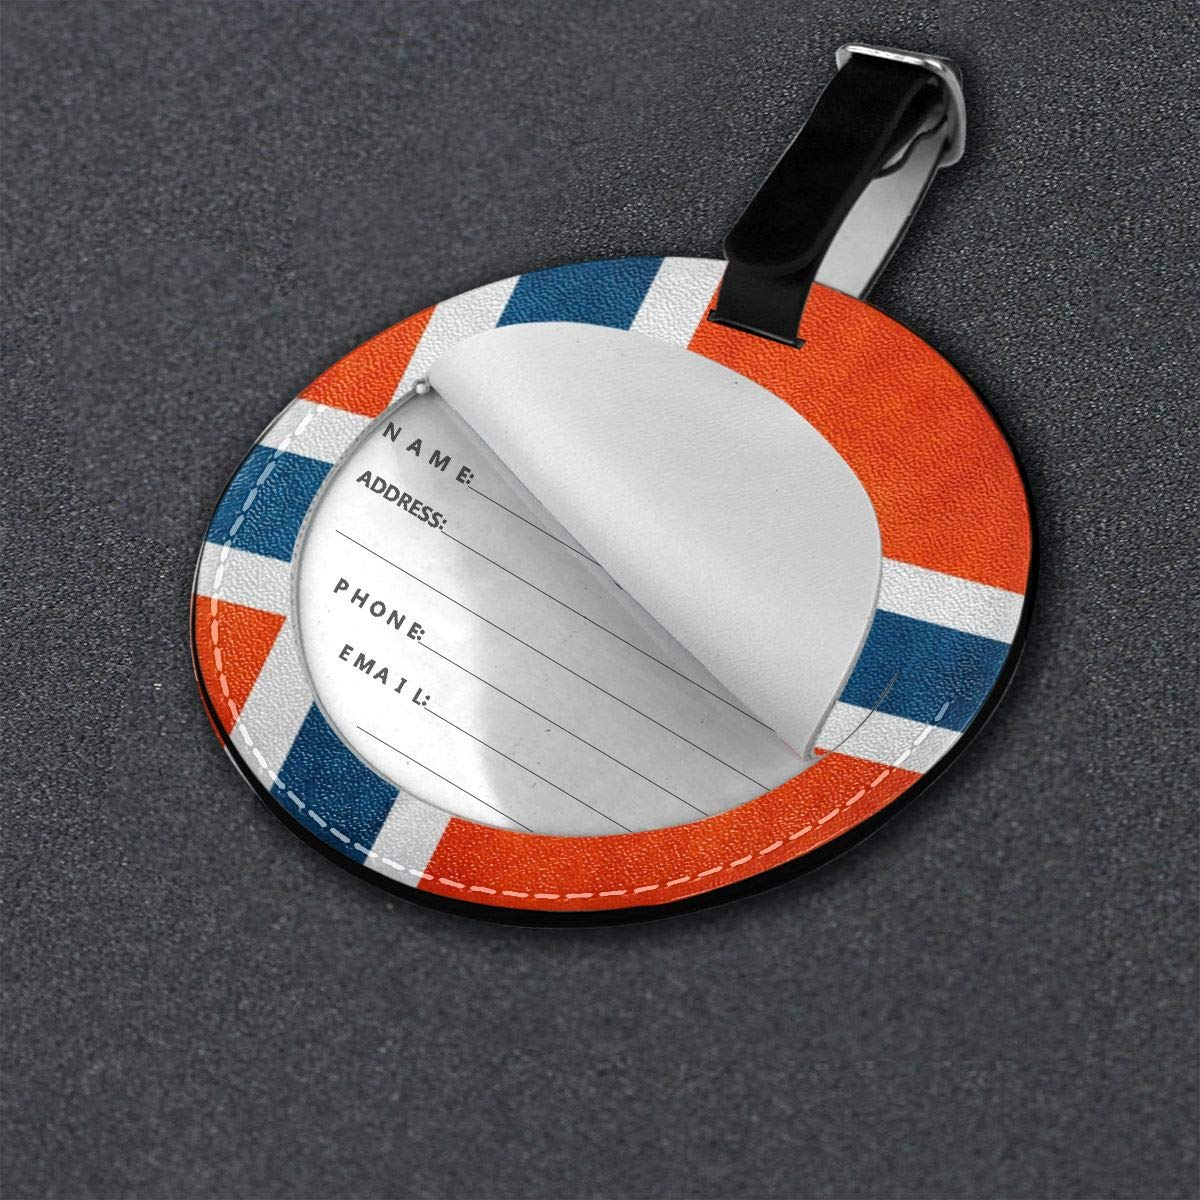 Hs8weyhfffFFF Luggage Tag Round Norway Flag Leather Luggage Bag Label Privacy Cover Business Travel Bag Label